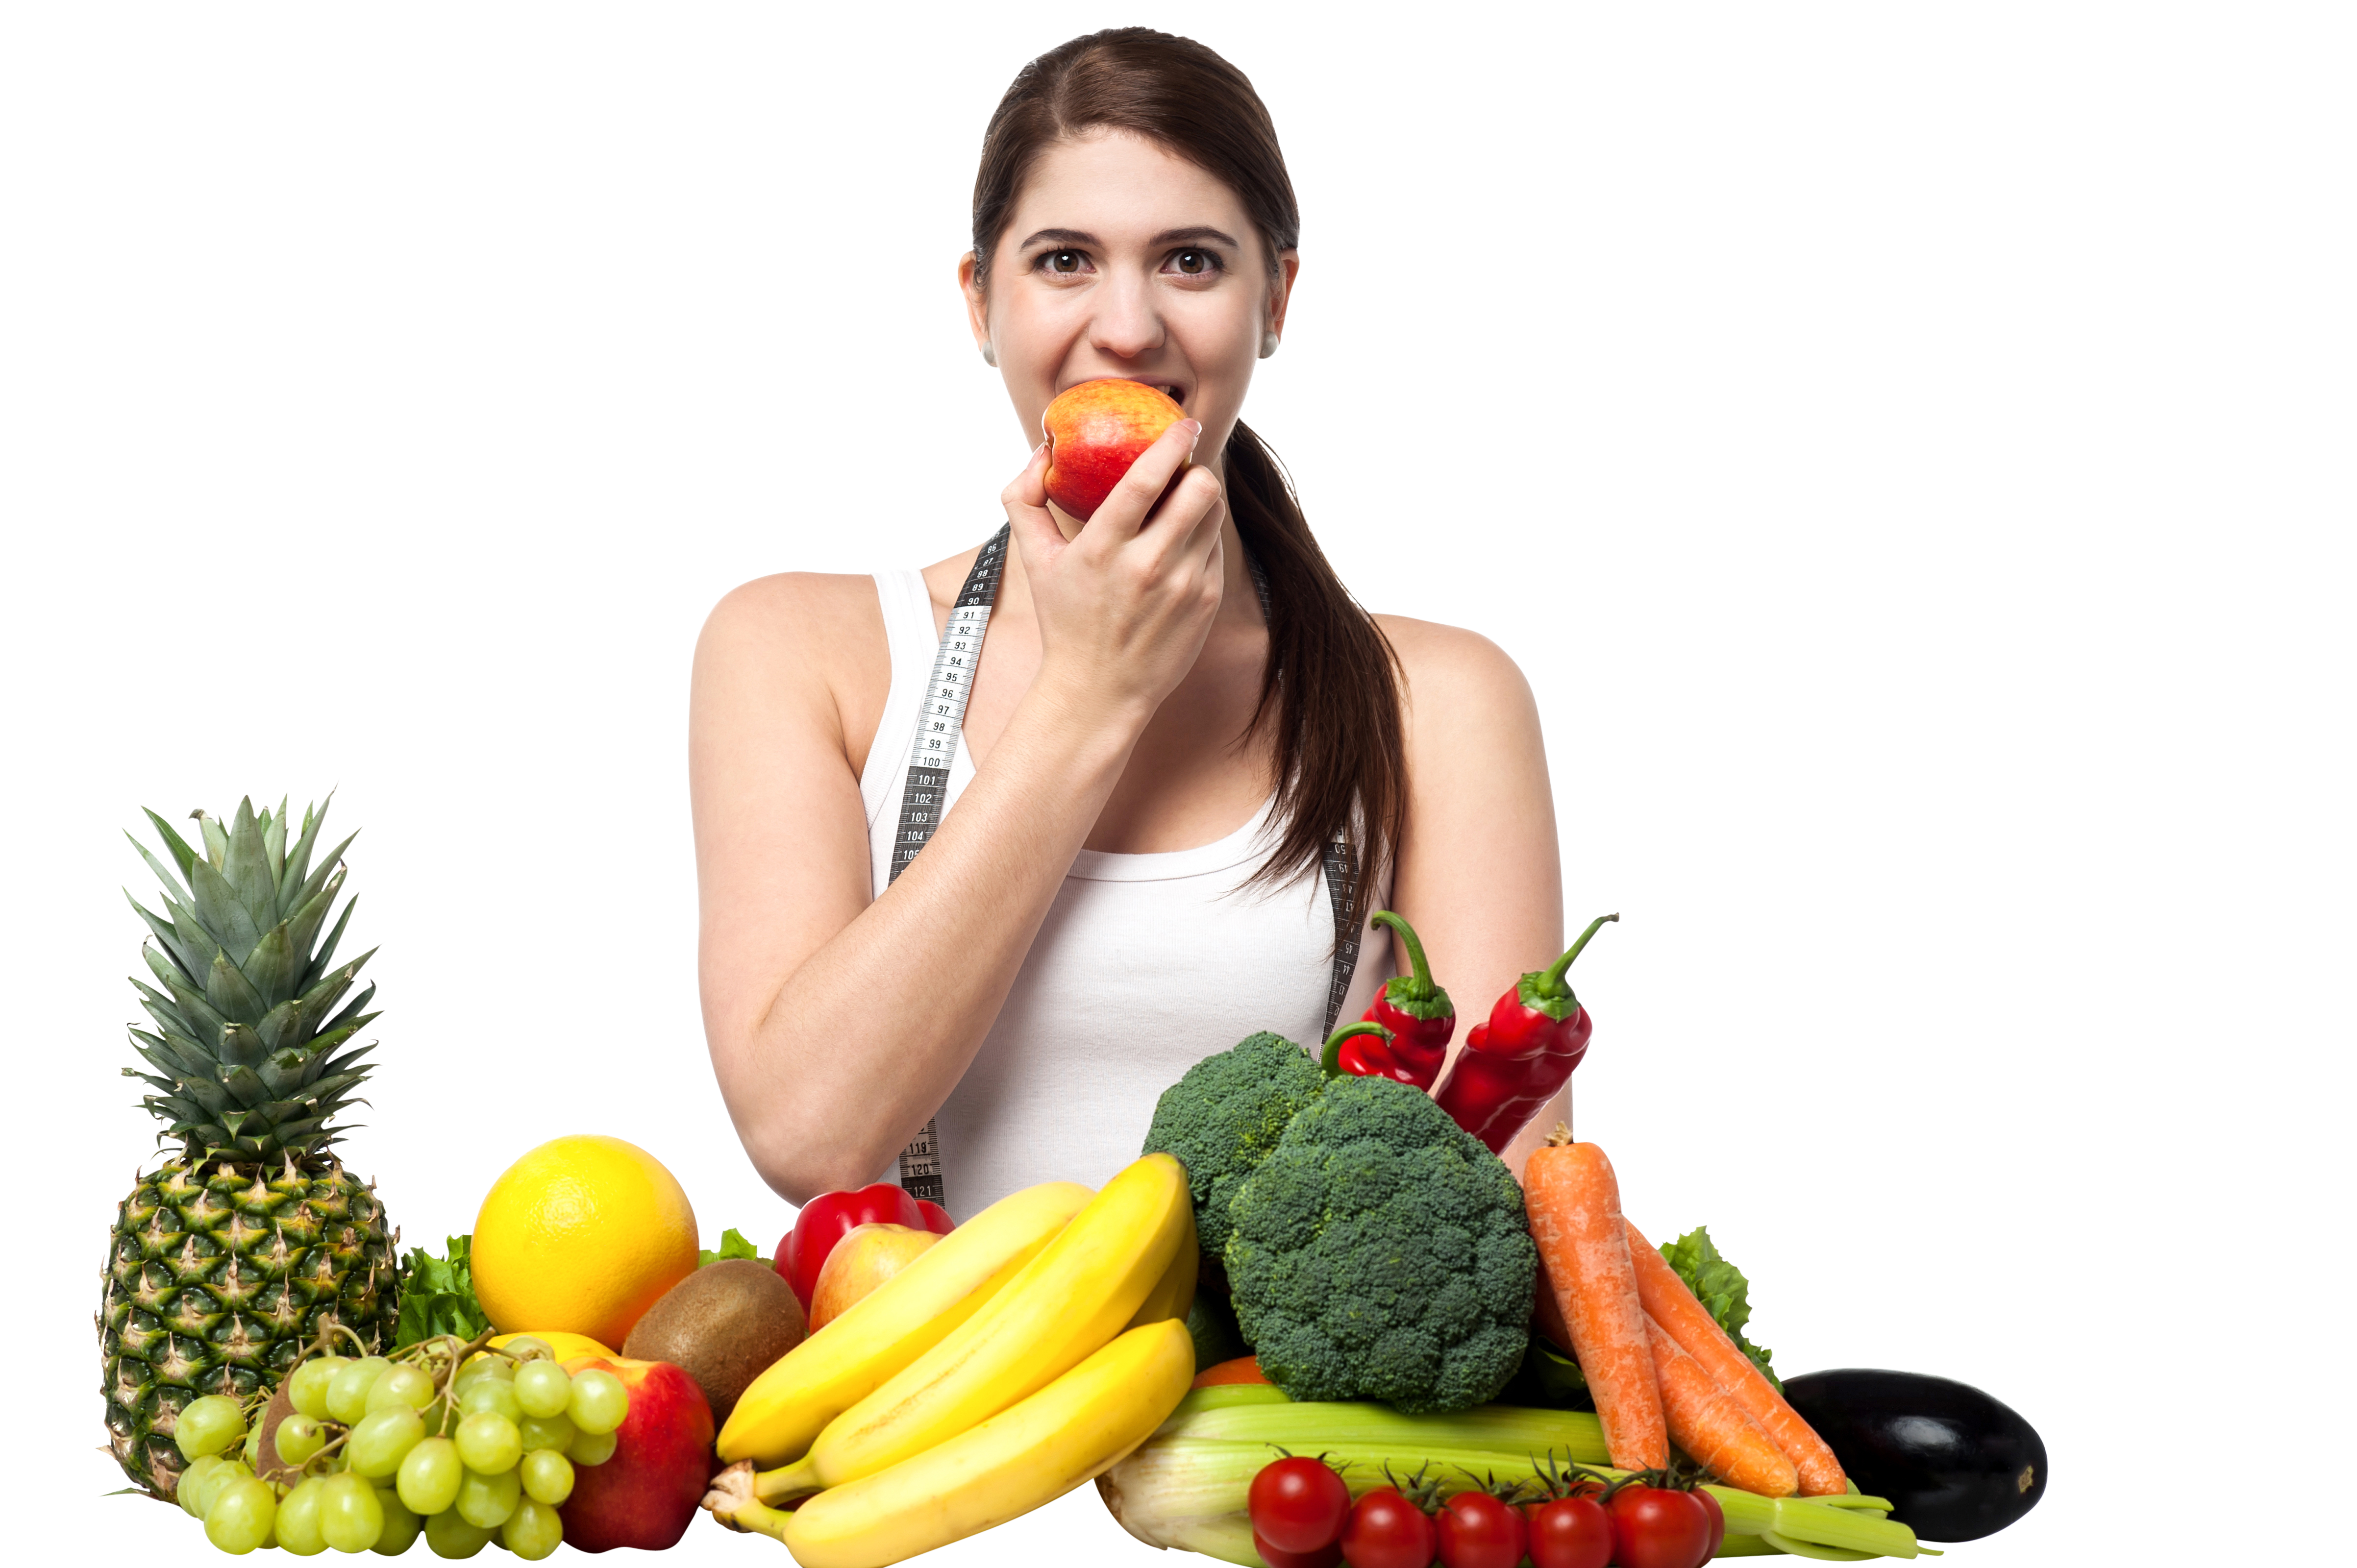 Girl with fruits image. Free png images for commercial use